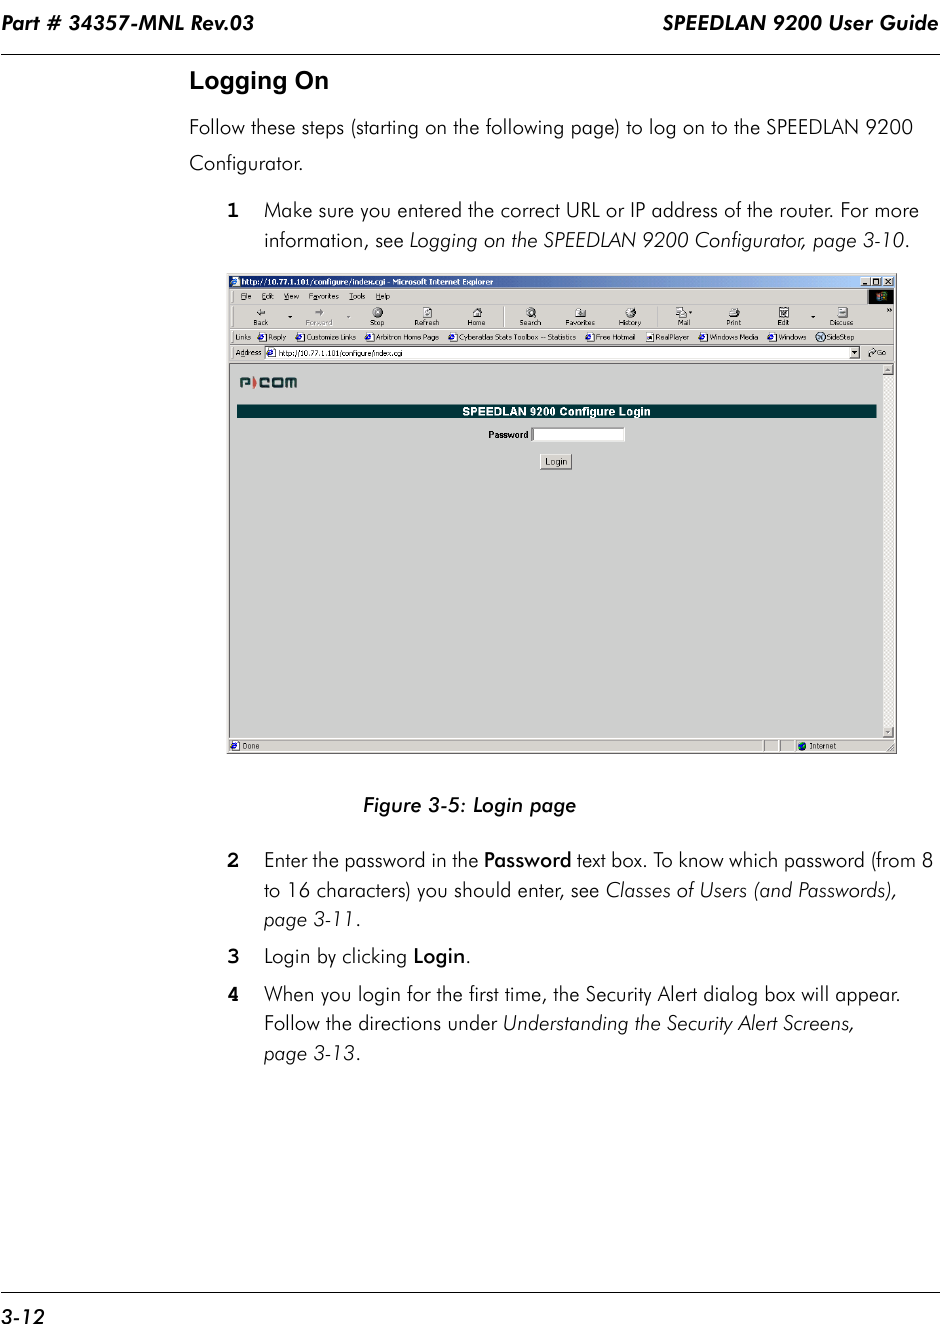 Part # 34357-MNL Rev.03                                                                   SPEEDLAN 9200 User Guide 3-12Logging OnFollow these steps (starting on the following page) to log on to the SPEEDLAN 9200 Configurator.1Make sure you entered the correct URL or IP address of the router. For more information, see Logging on the SPEEDLAN 9200 Configurator, page 3-10.Figure 3-5: Login page2Enter the password in the Password text box. To know which password (from 8 to 16 characters) you should enter, see Classes of Users (and Passwords), page 3-11. 3Login by clicking Login. 4When you login for the first time, the Security Alert dialog box will appear. Follow the directions under Understanding the Security Alert Screens, page 3-13.